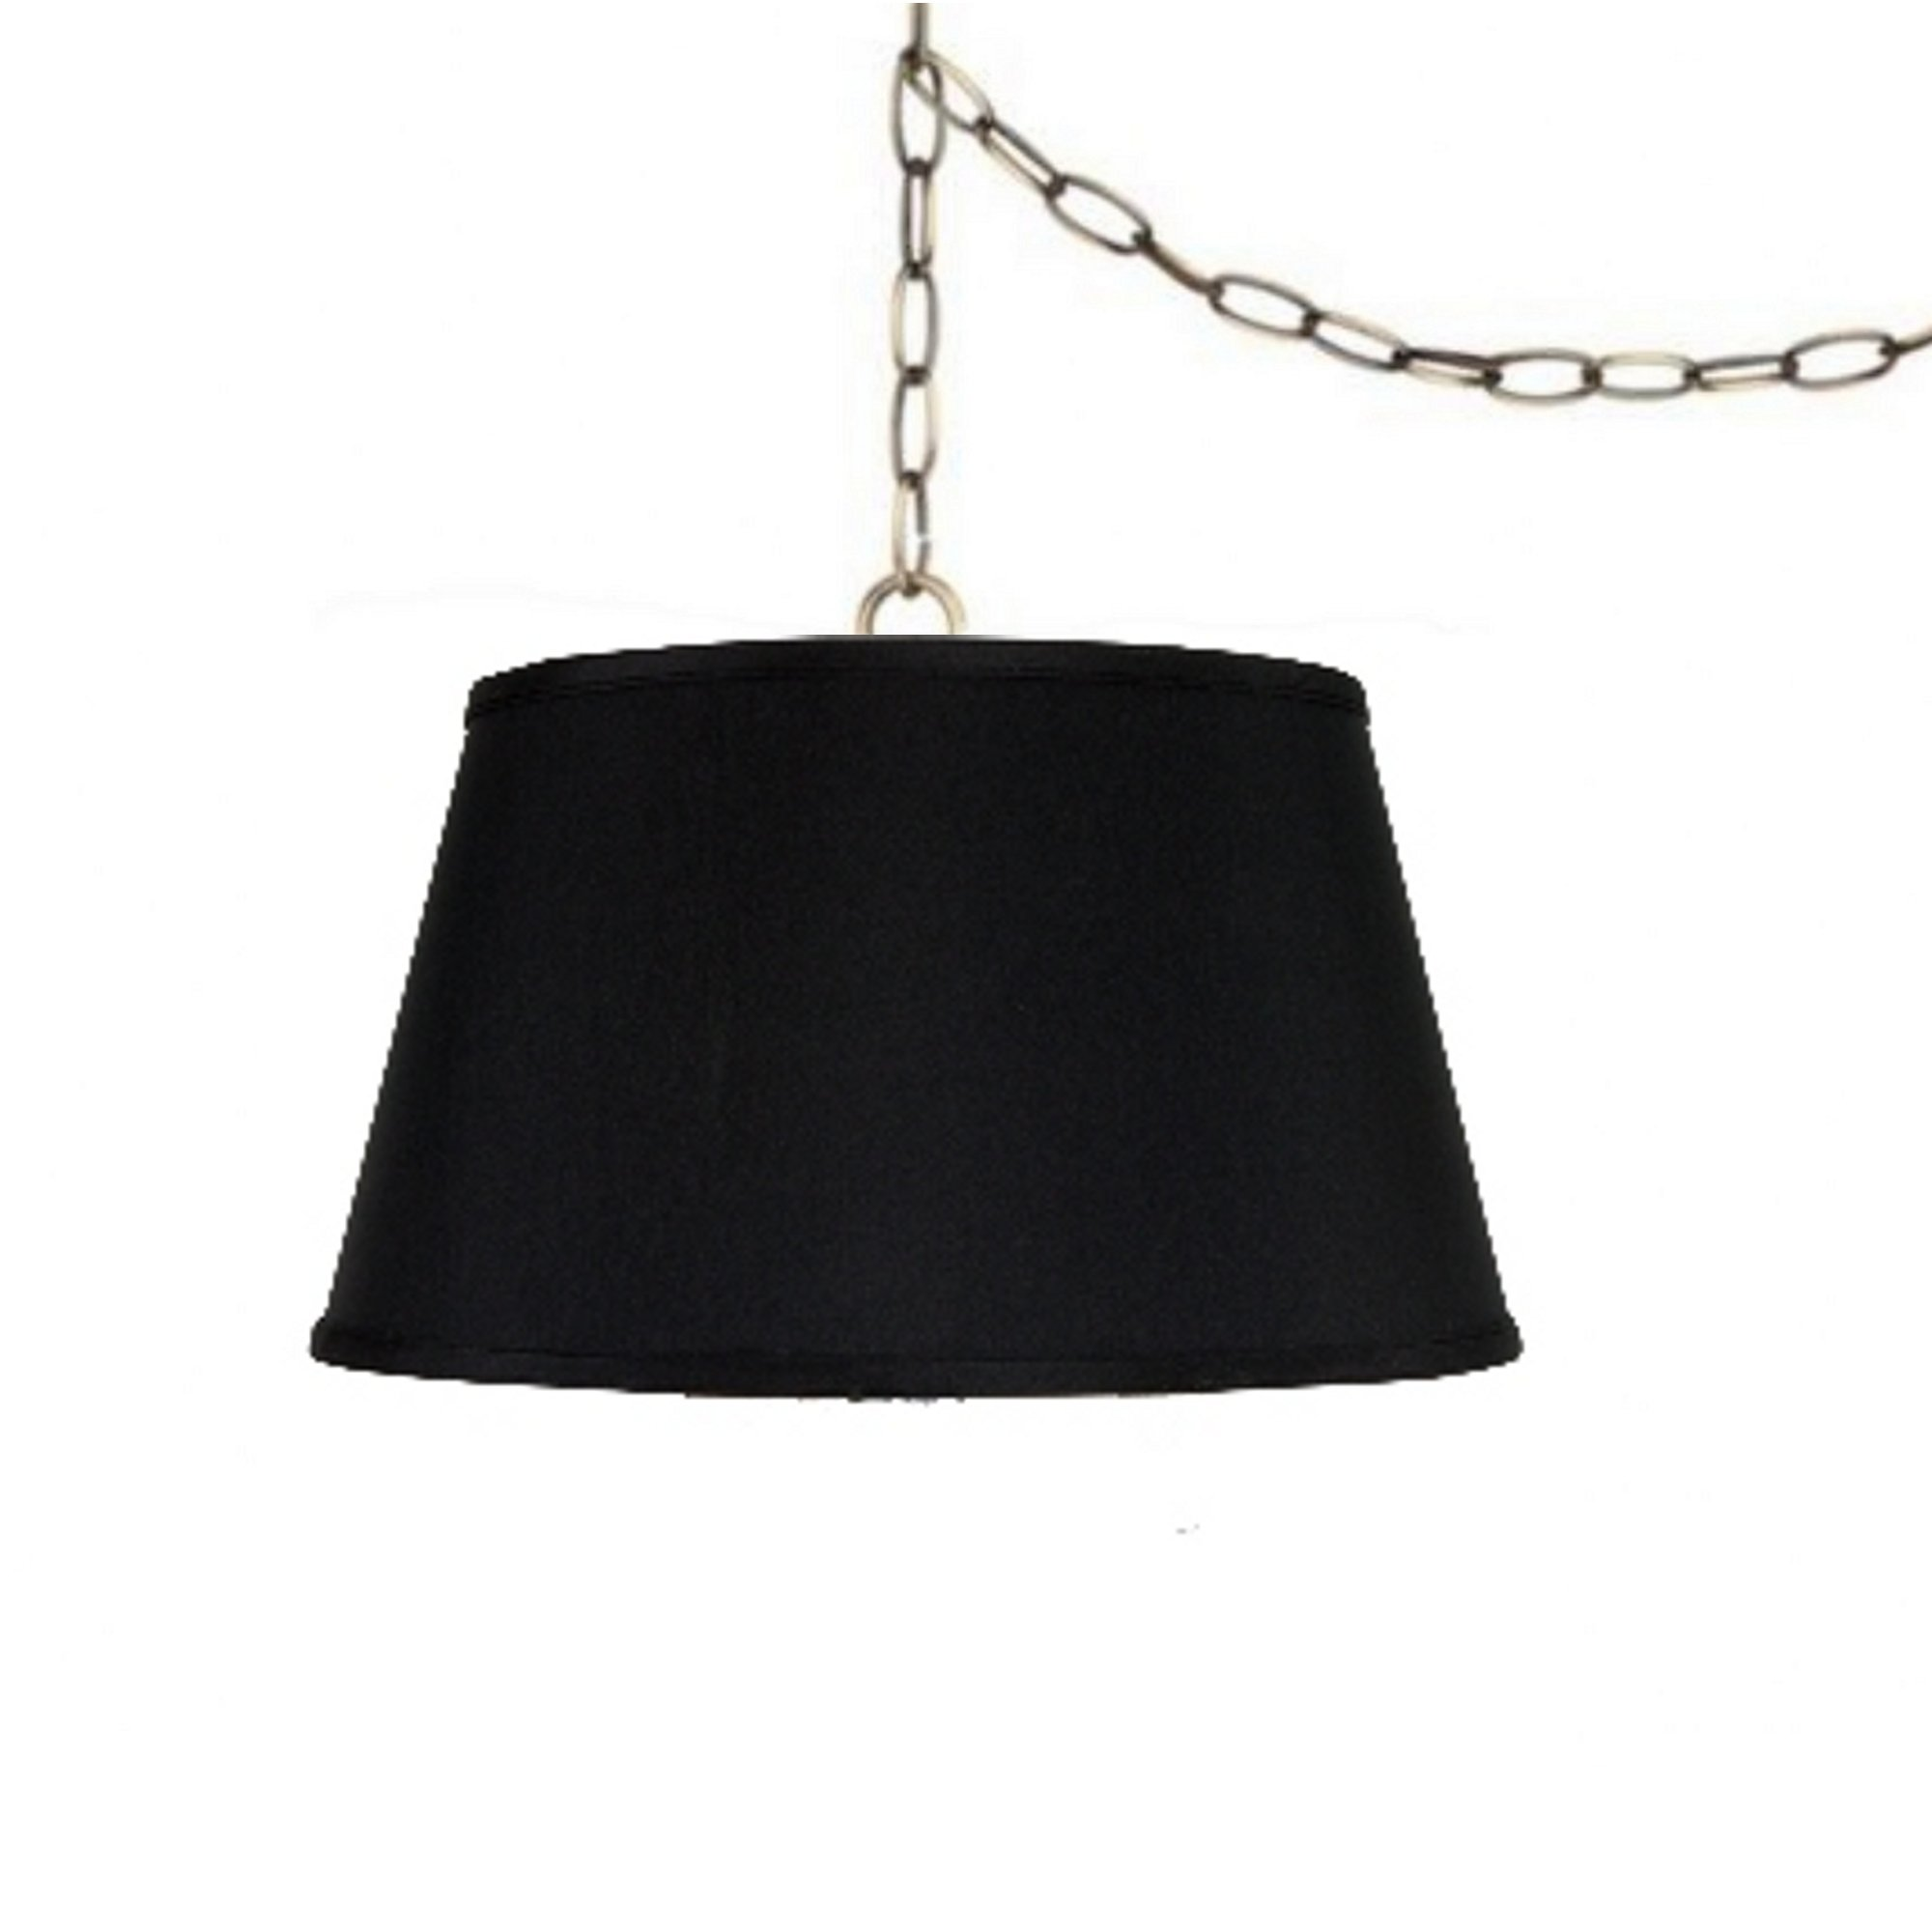 Upgradelights Swag Lamp Fixture 19 Inch Laminated Silk Pendant Lamp Shade in Black Hanging Light